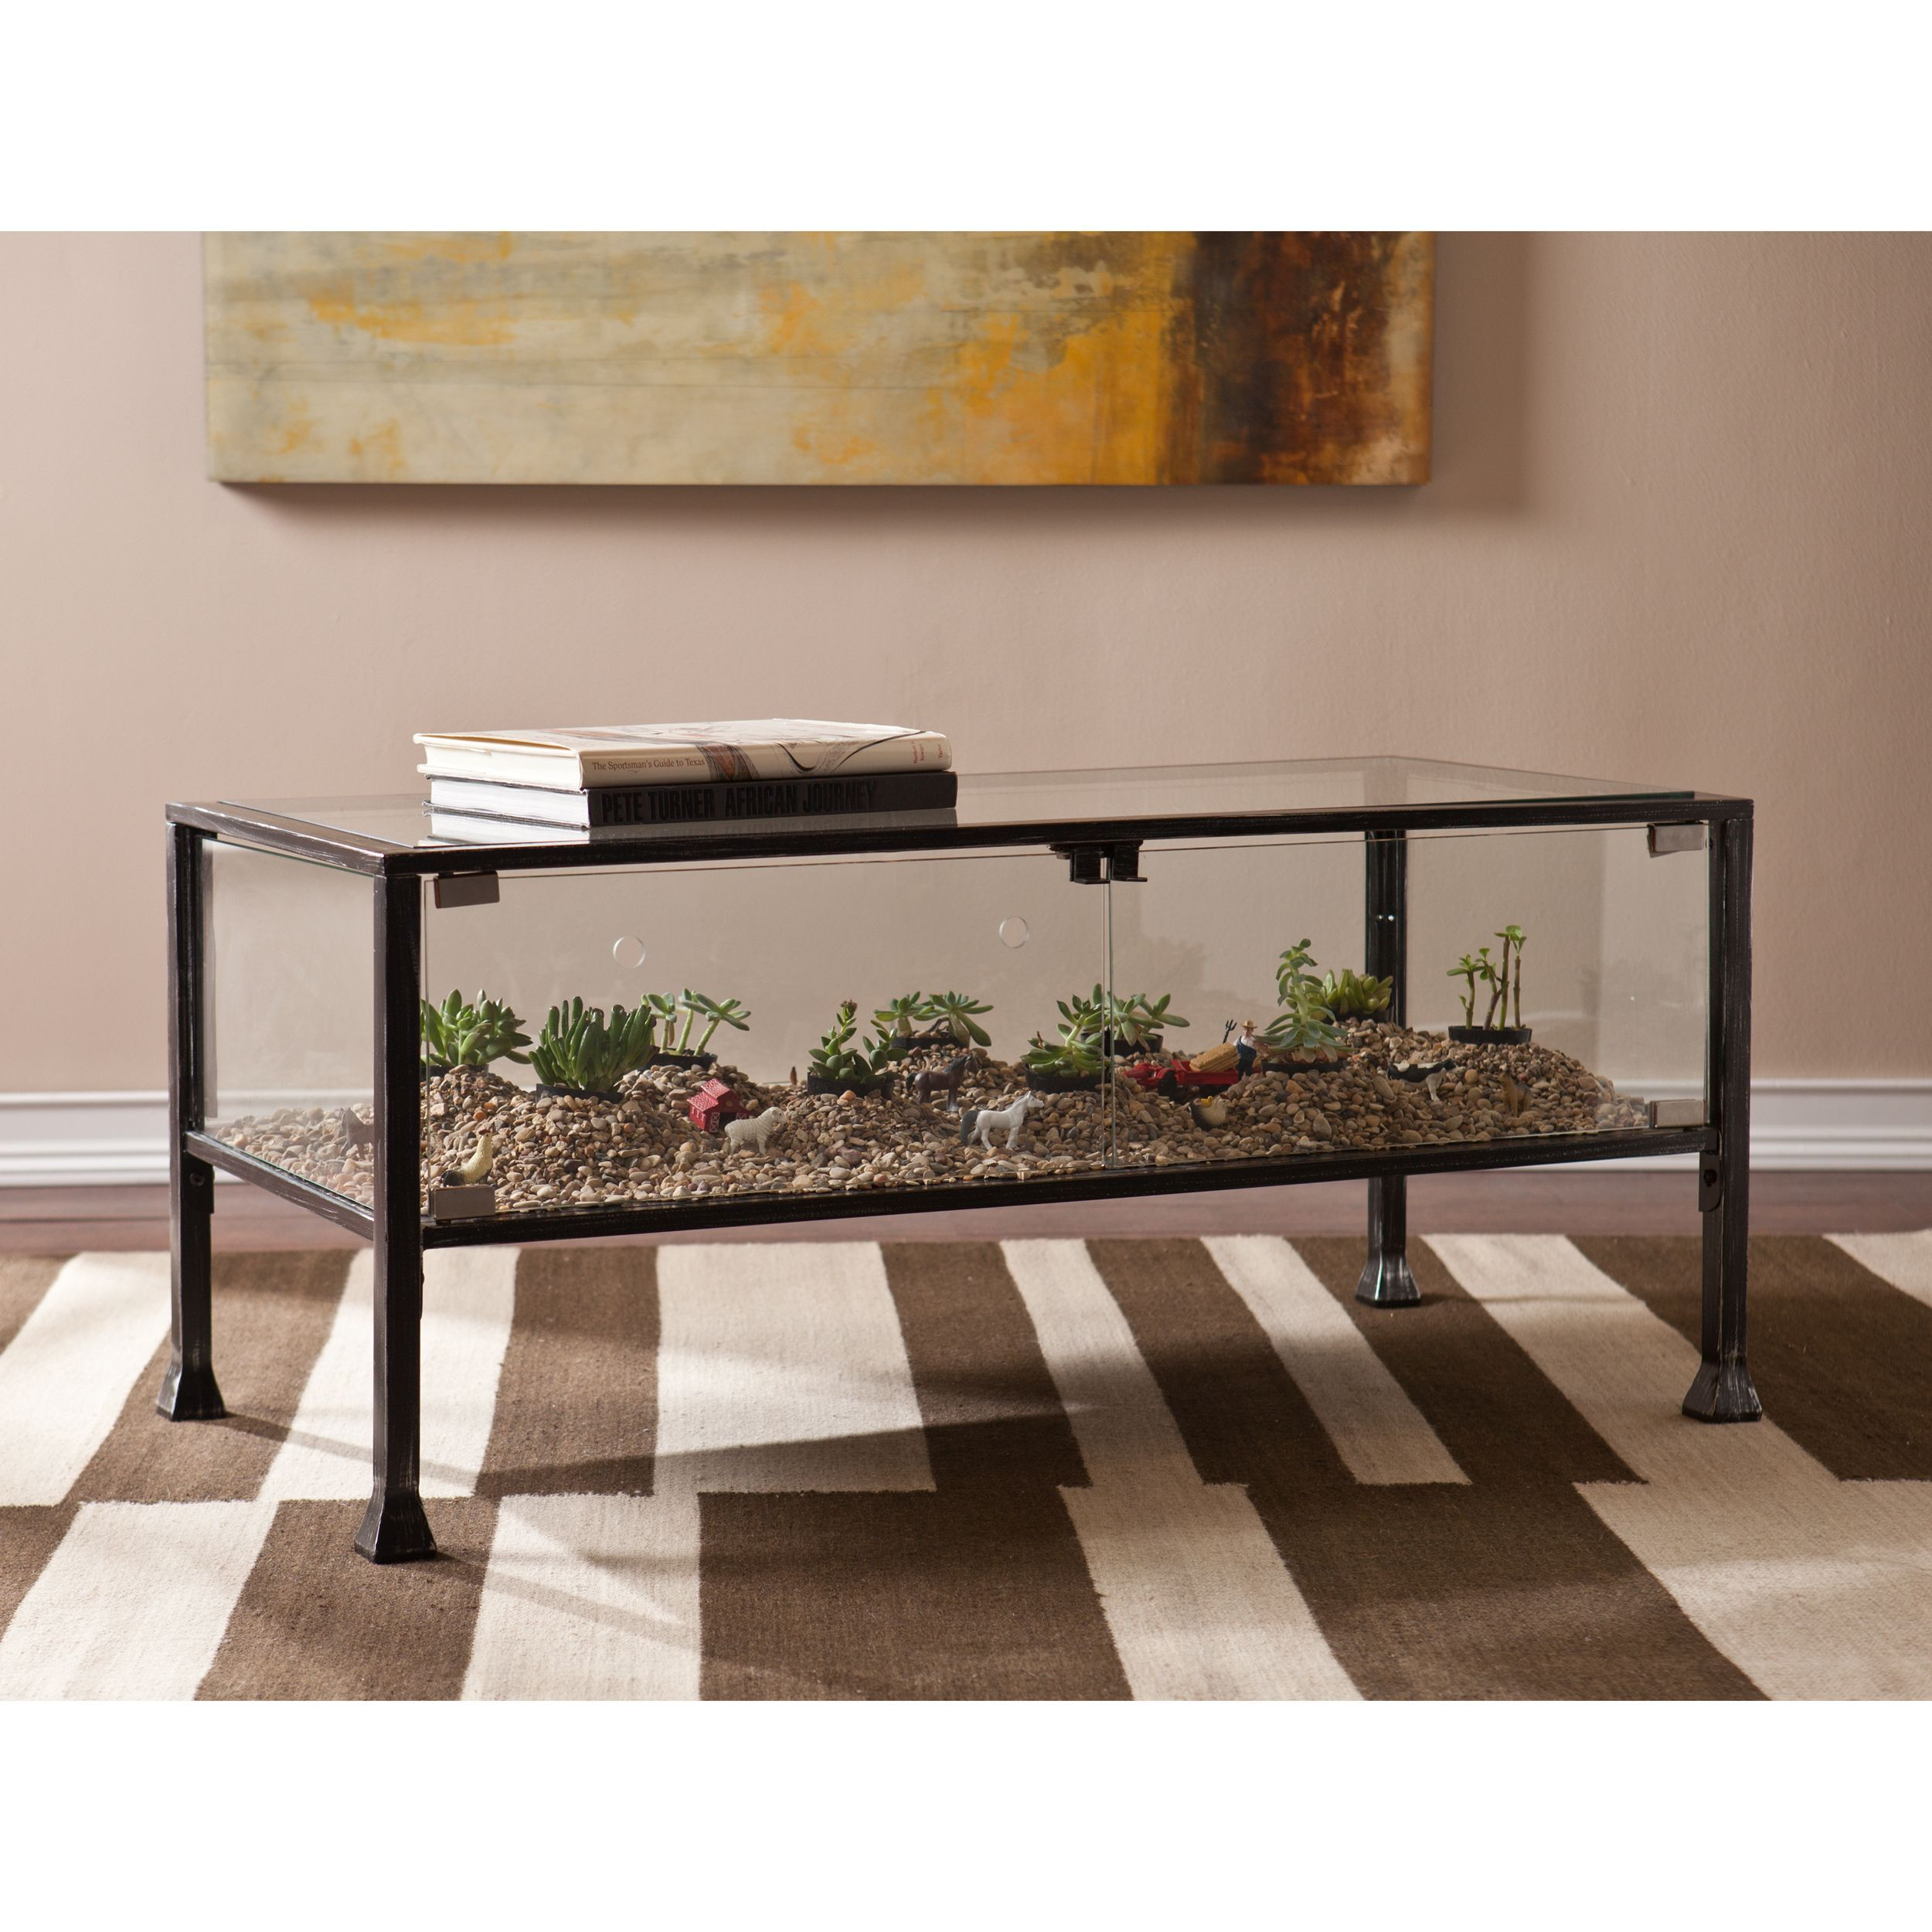 Harper Blvd Display Terrarium Coffee Cocktail Table